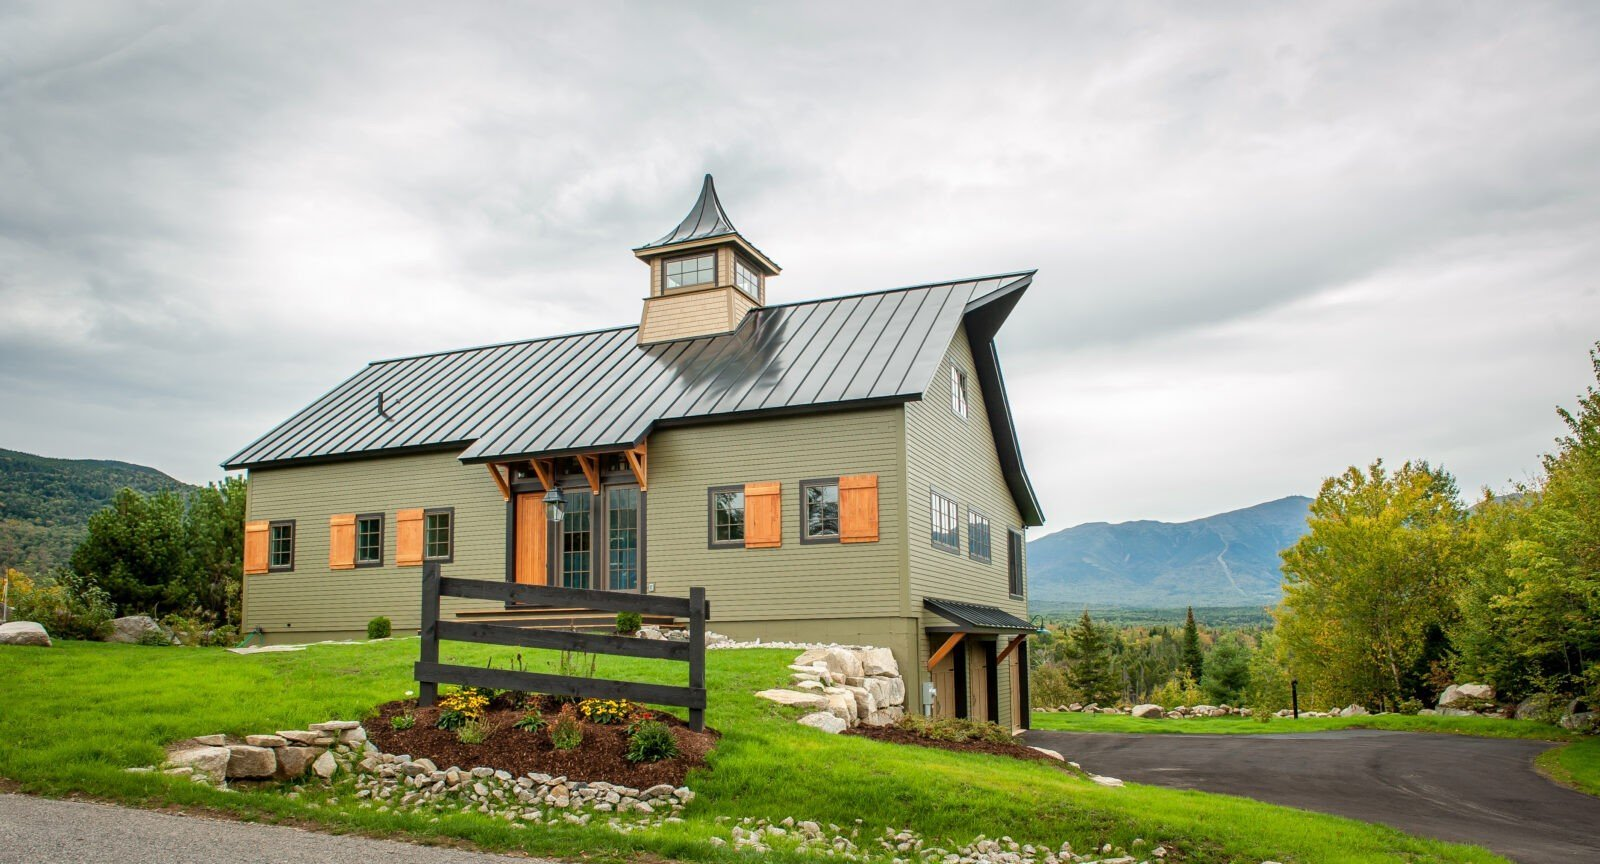 Top notch barn home plans from the ybh design team for Barn style house plans